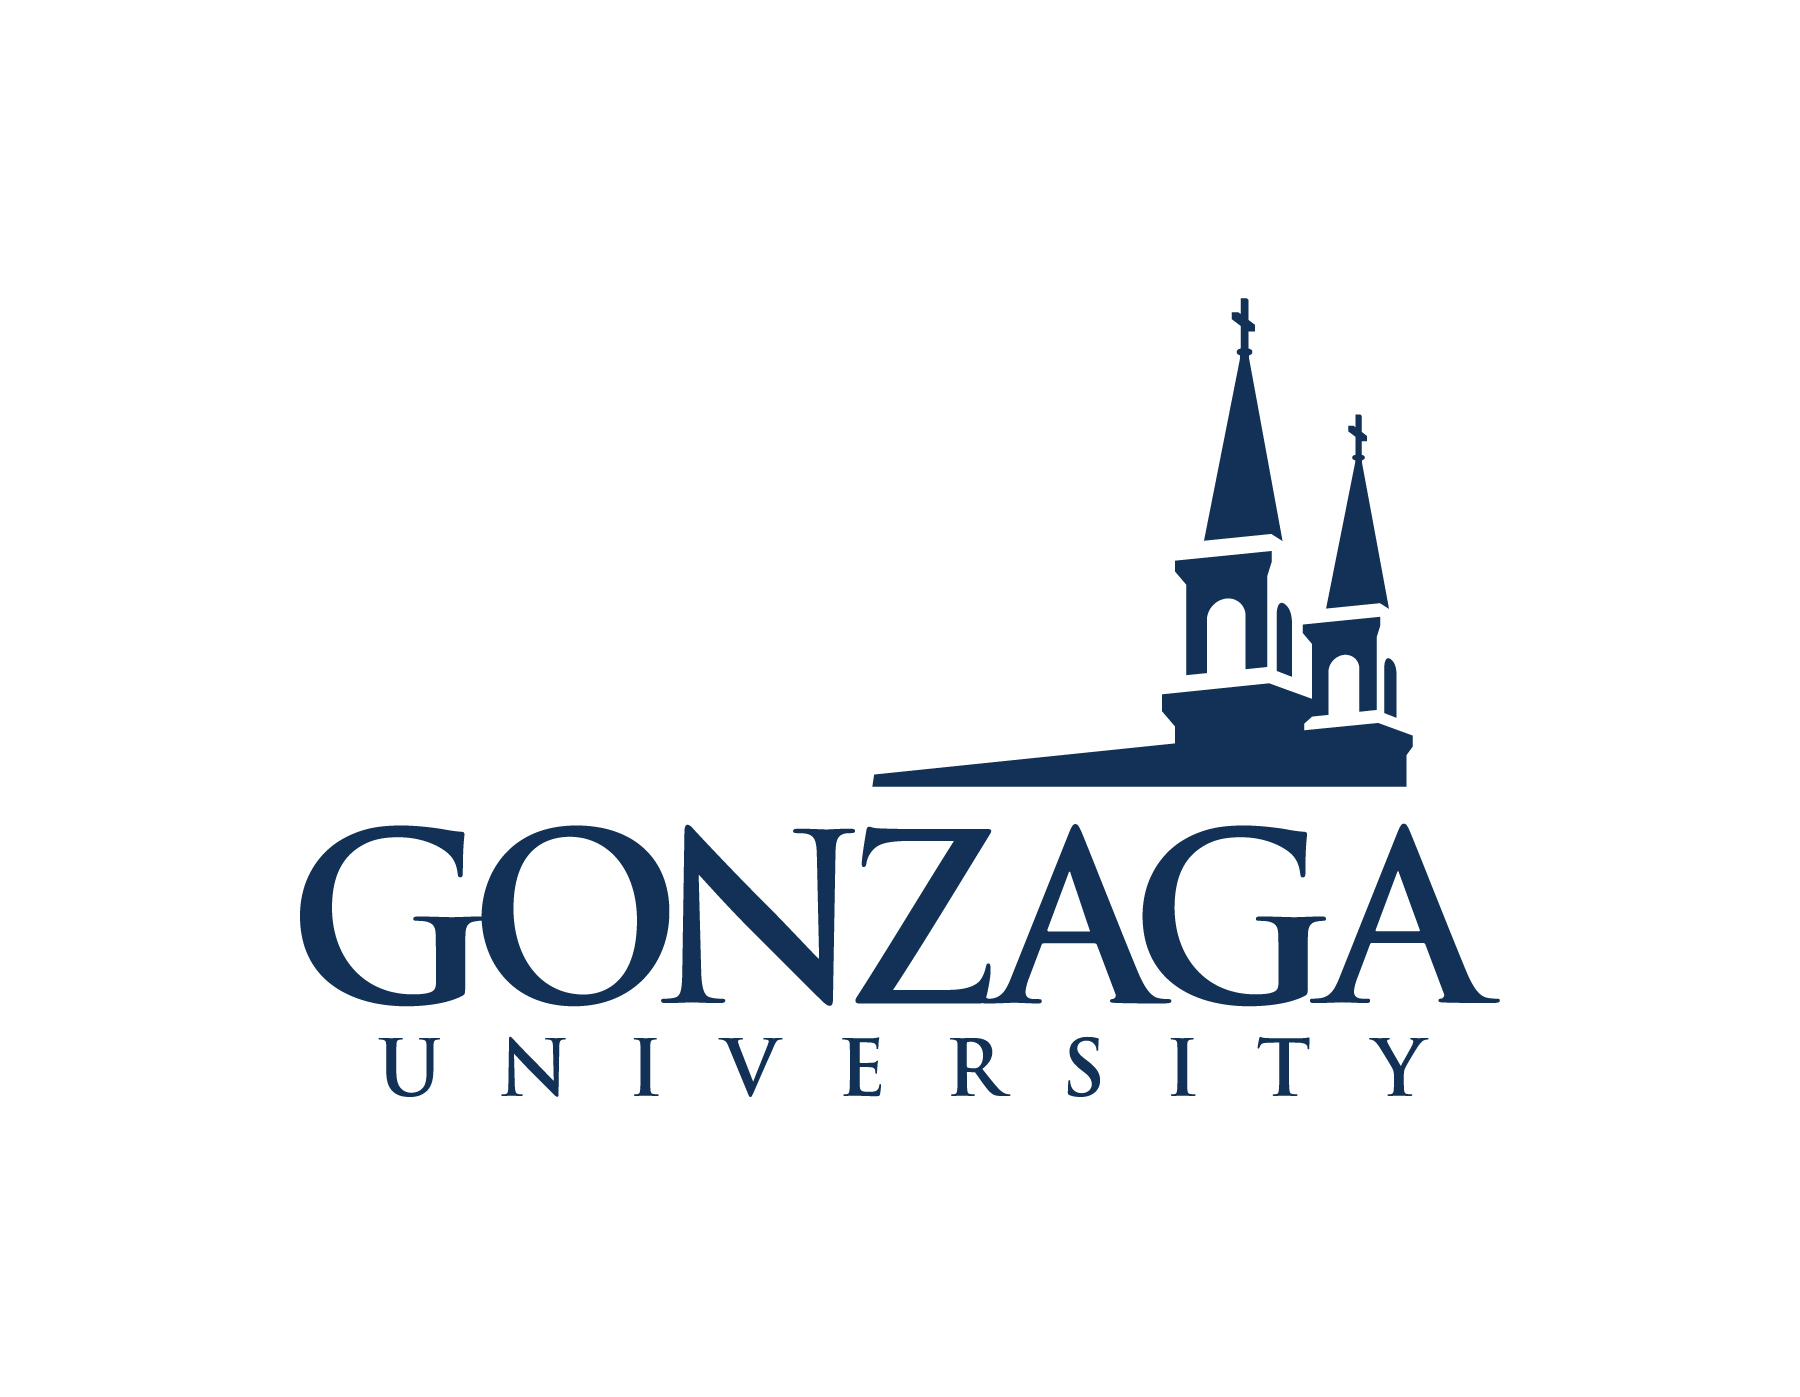 Gonzaga logo courtesy of Gonzaga University